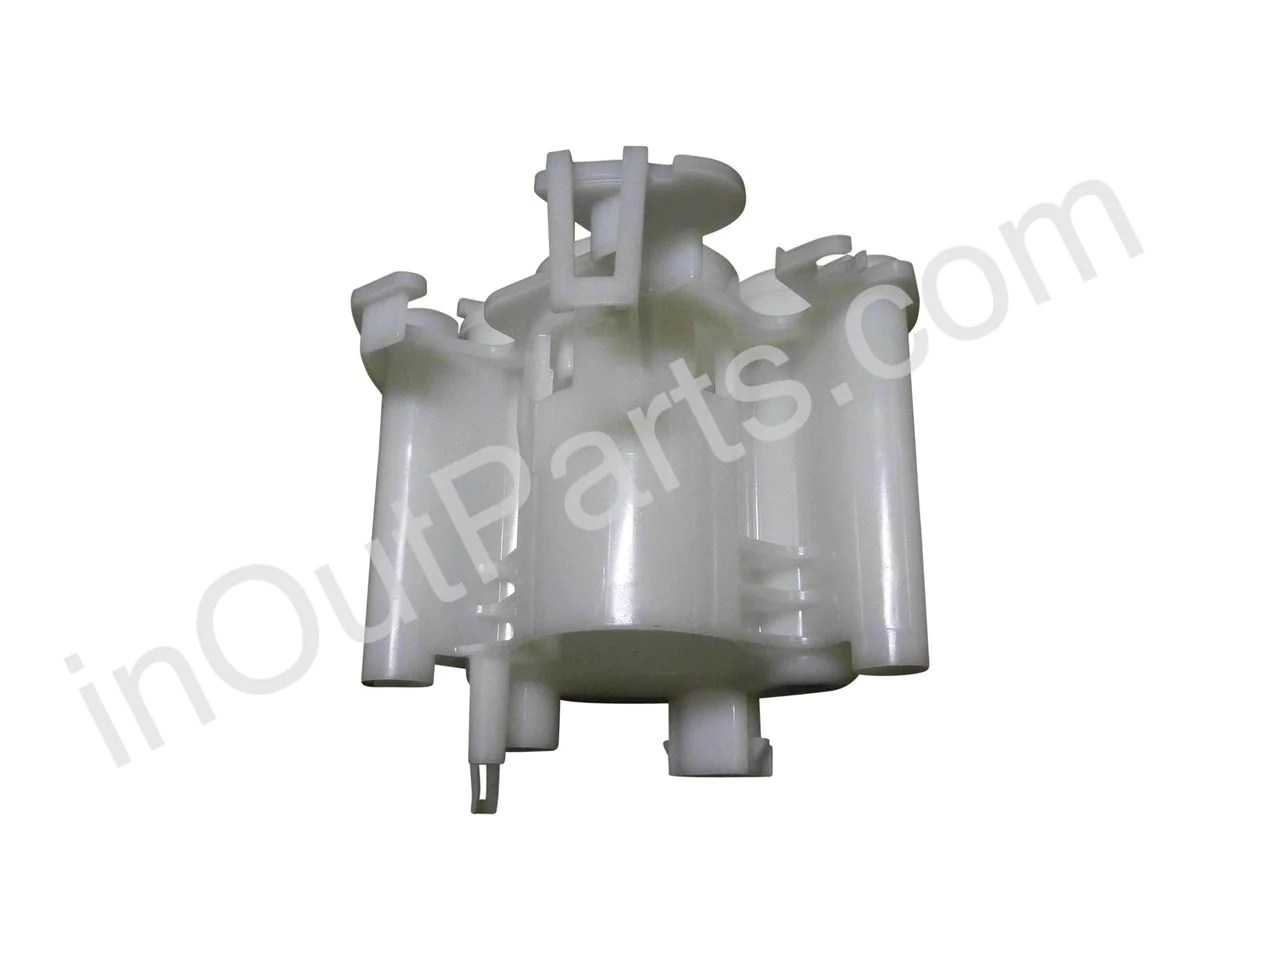 small resolution of fuel filter fits lexus rx300 rx330 rx350 2003 2004 2005 2006 inout parts